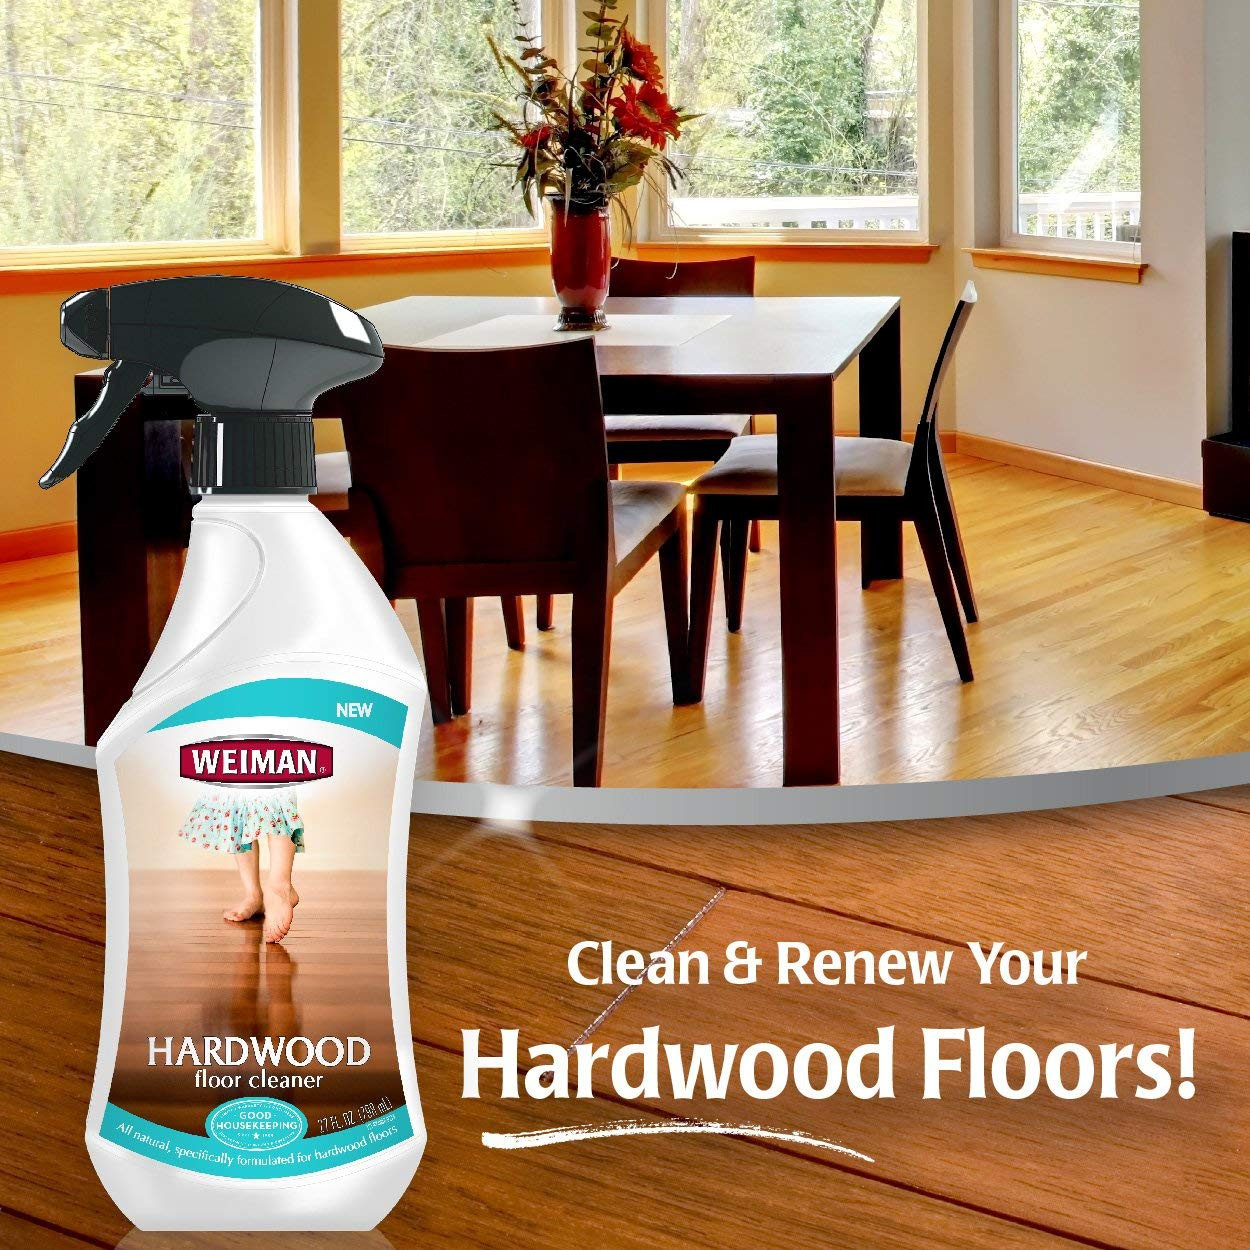 Cleaning Engineered Hardwood Floors Steam Mop Of Amazon Com Weiman Hardwood Floor Cleaner Surface Safe No Harsh Pertaining to Amazon Com Weiman Hardwood Floor Cleaner Surface Safe No Harsh Scent Safe for Use Around Kids and Pets Residue Free 27 Oz Trigger Home Kitchen